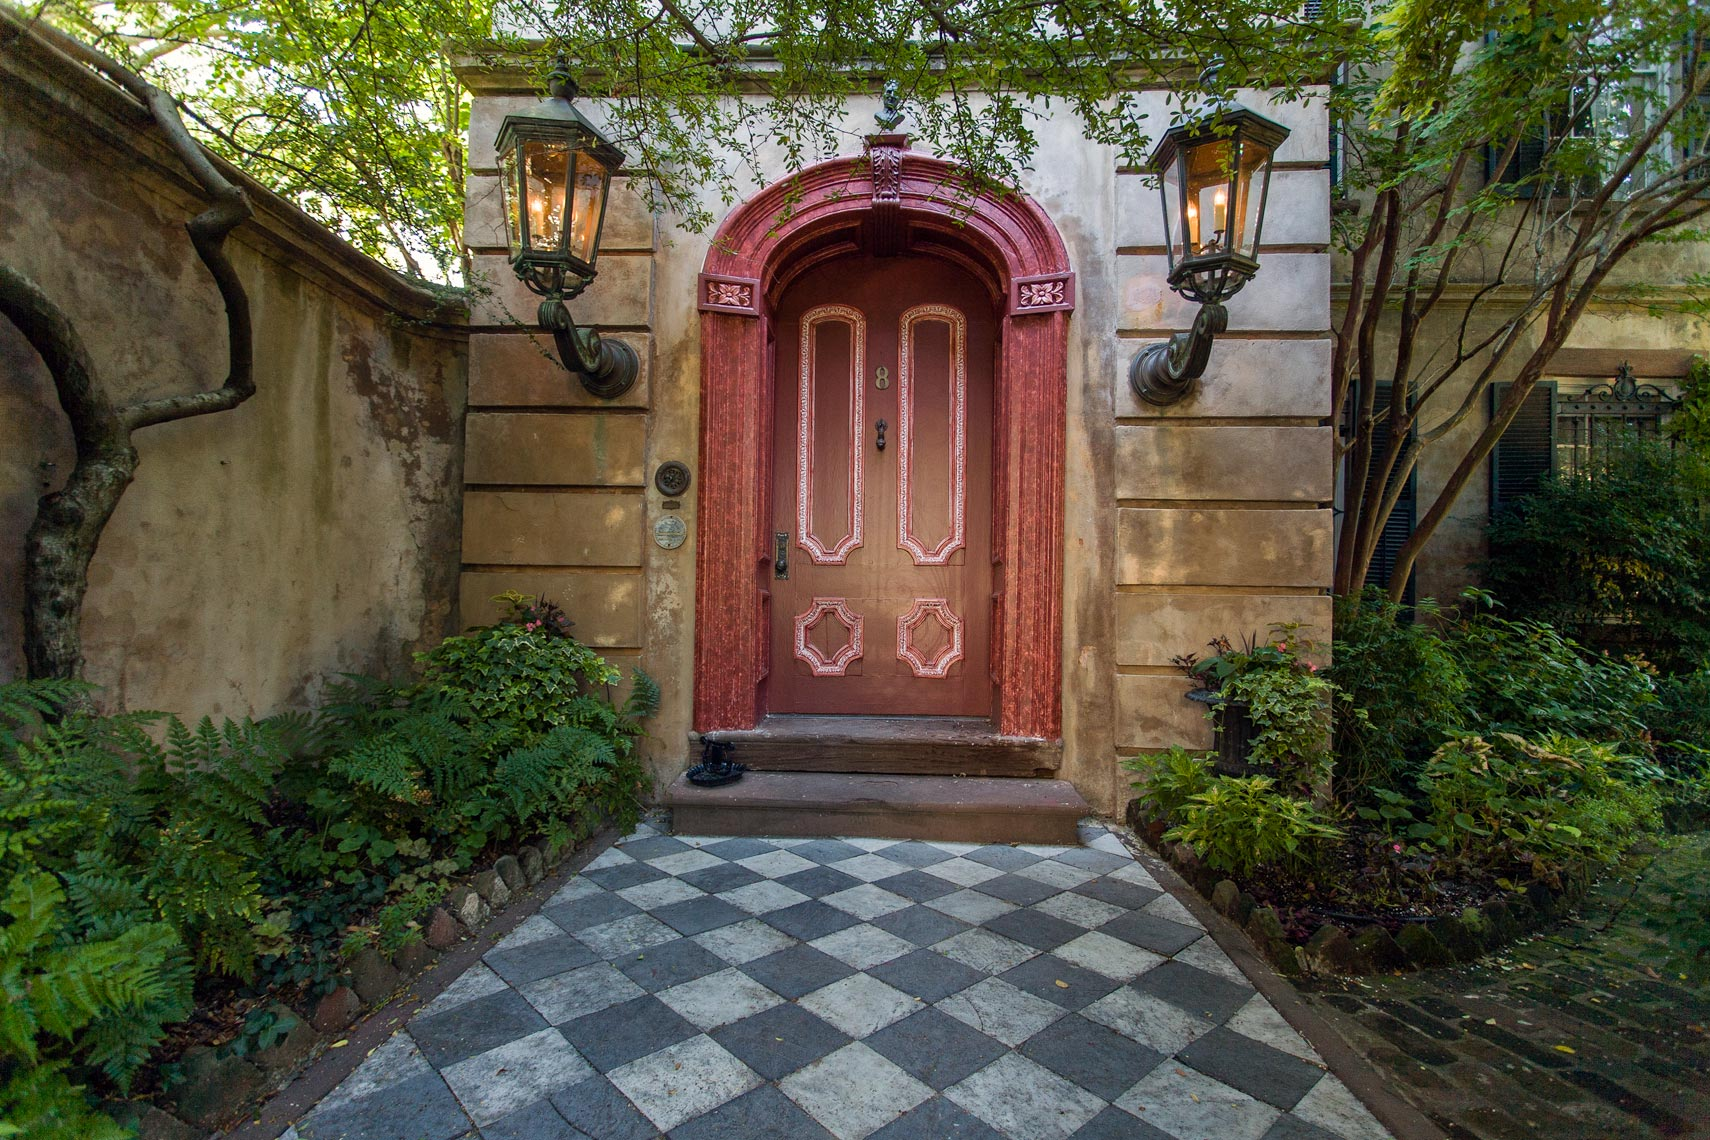 Tiled walkway and red door,Charleston, South Carolina